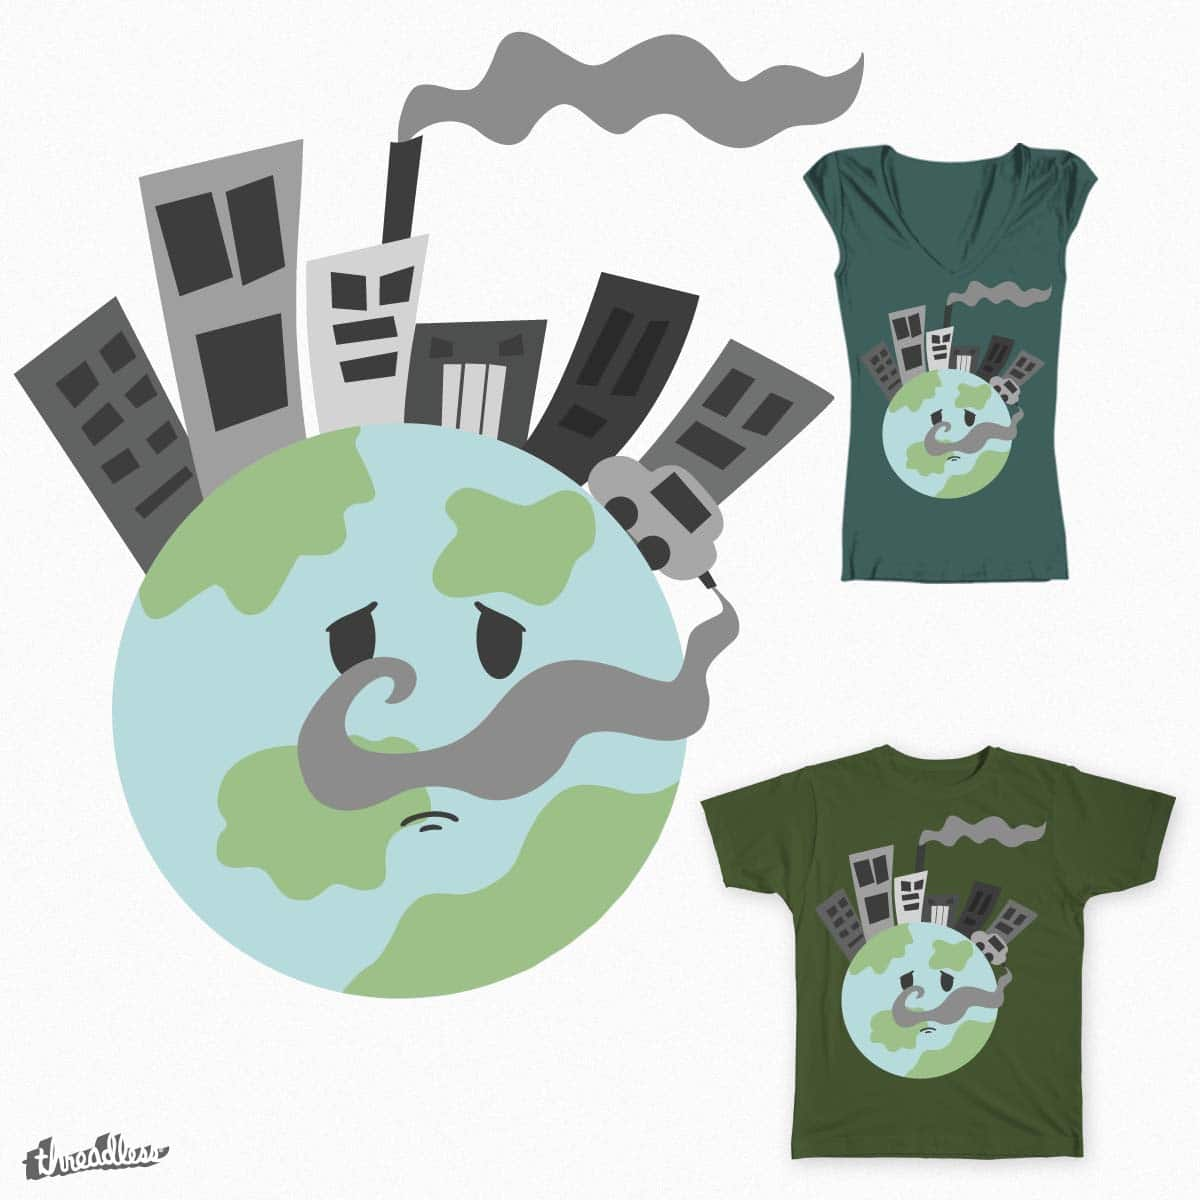 Pollution's not the solution! by AnarkozArtCollective on Threadless